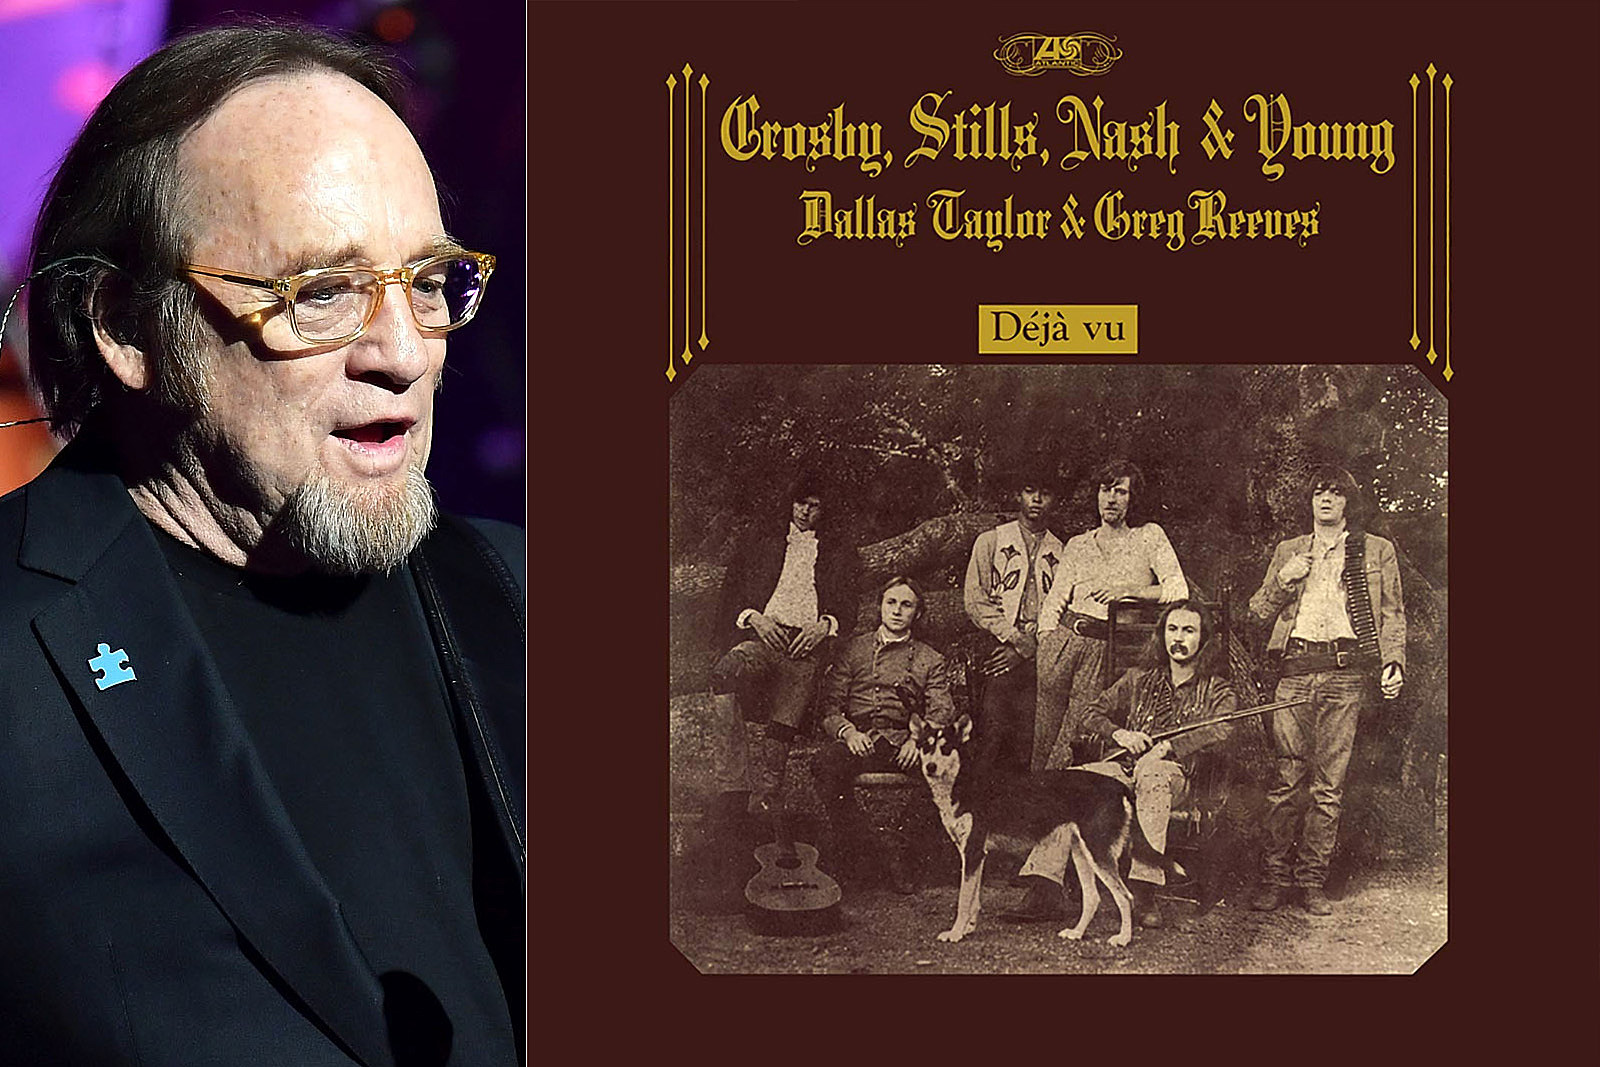 Stephen Stills Takes Blame for 'Deja Vu' Album Art Drama